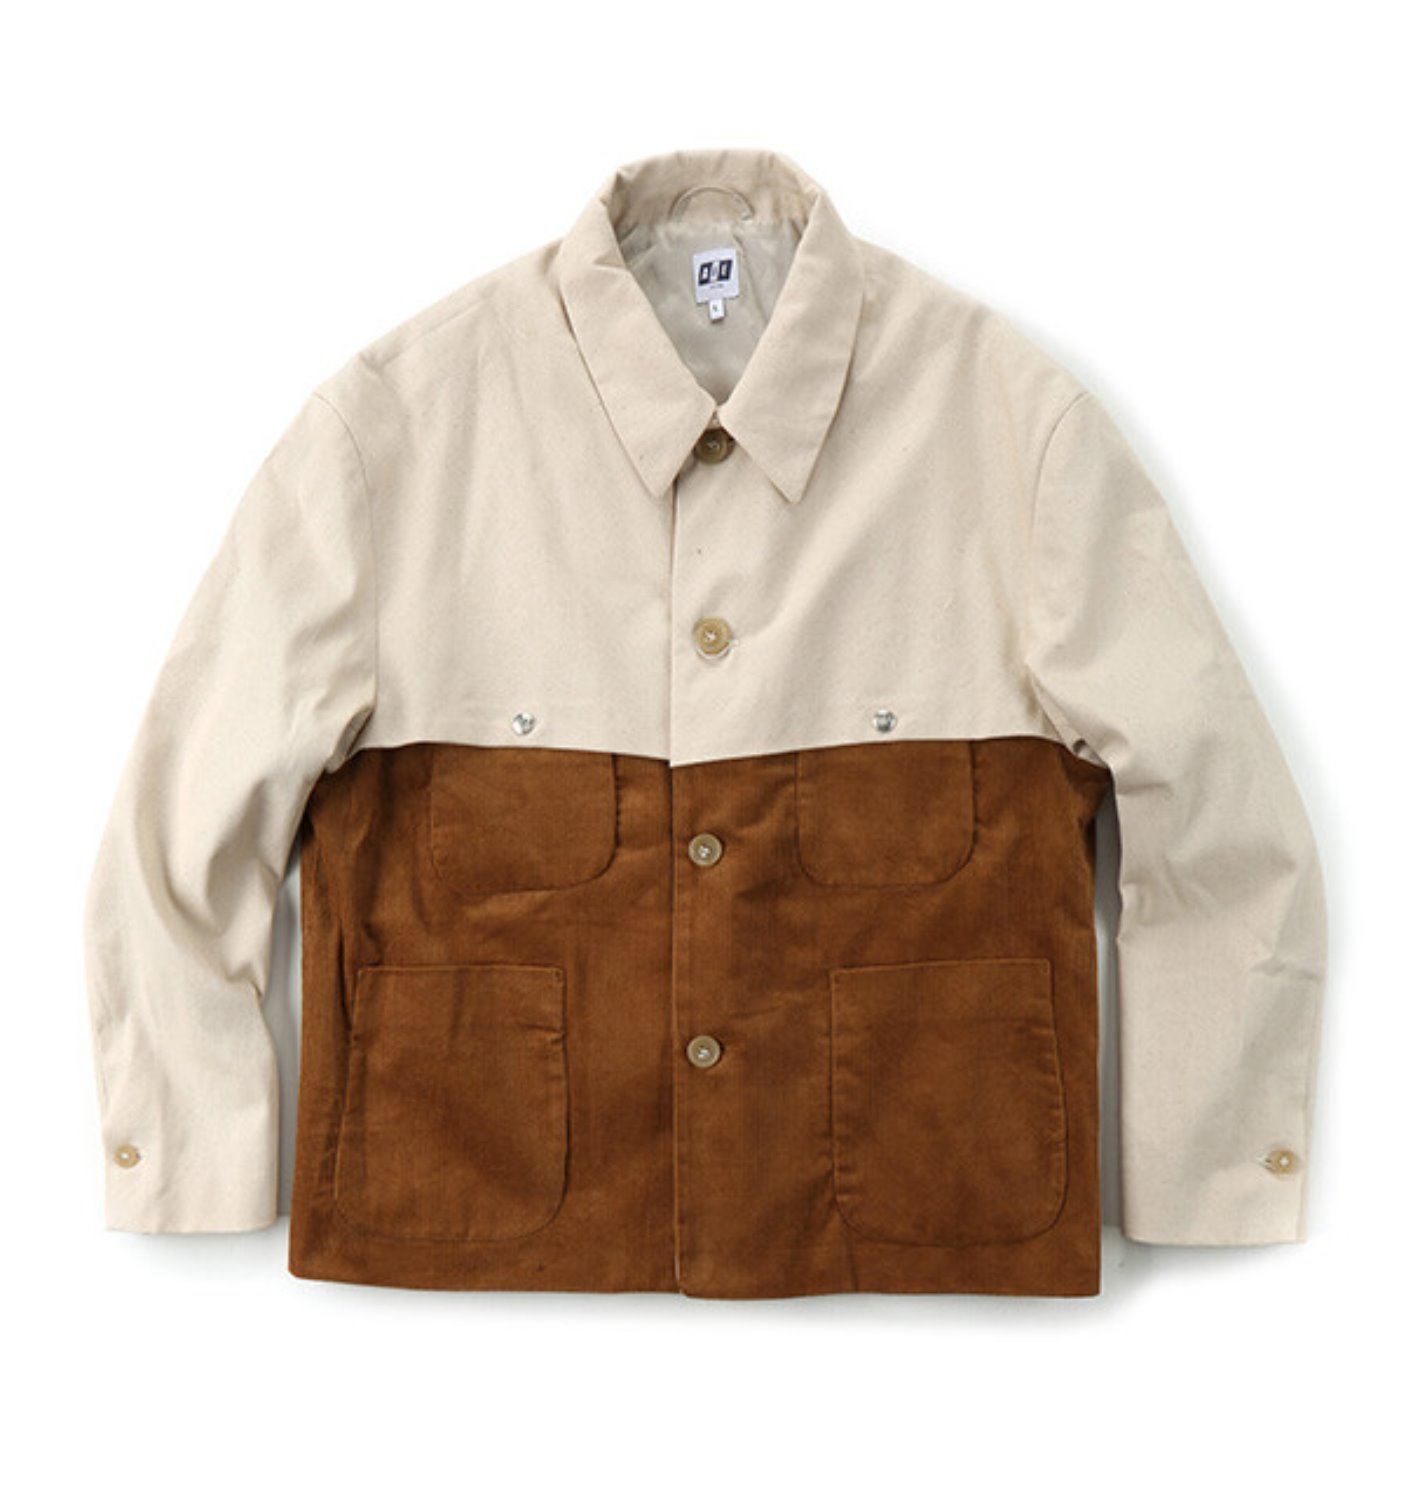 THT JACKET CHESTNUT COTTON 8W CORDUROY